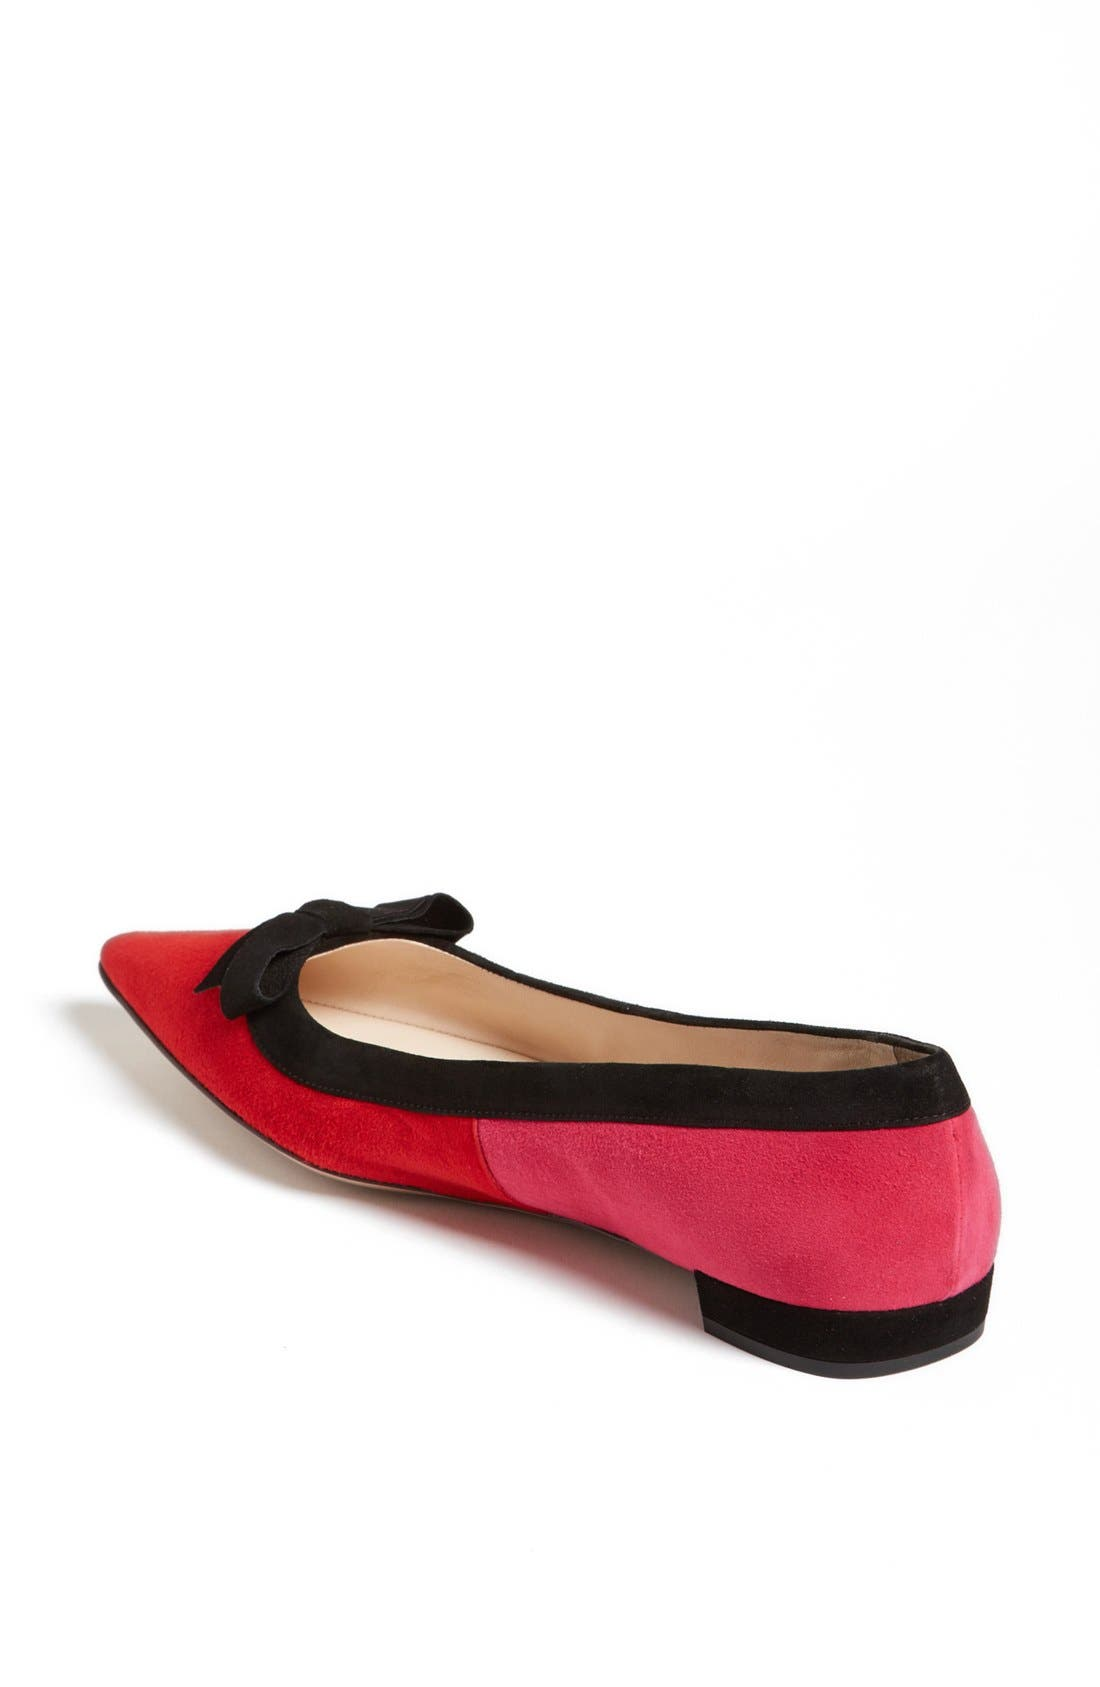 Alternate Image 2  - Prada Tricolor Bow Pointy Toe Flat